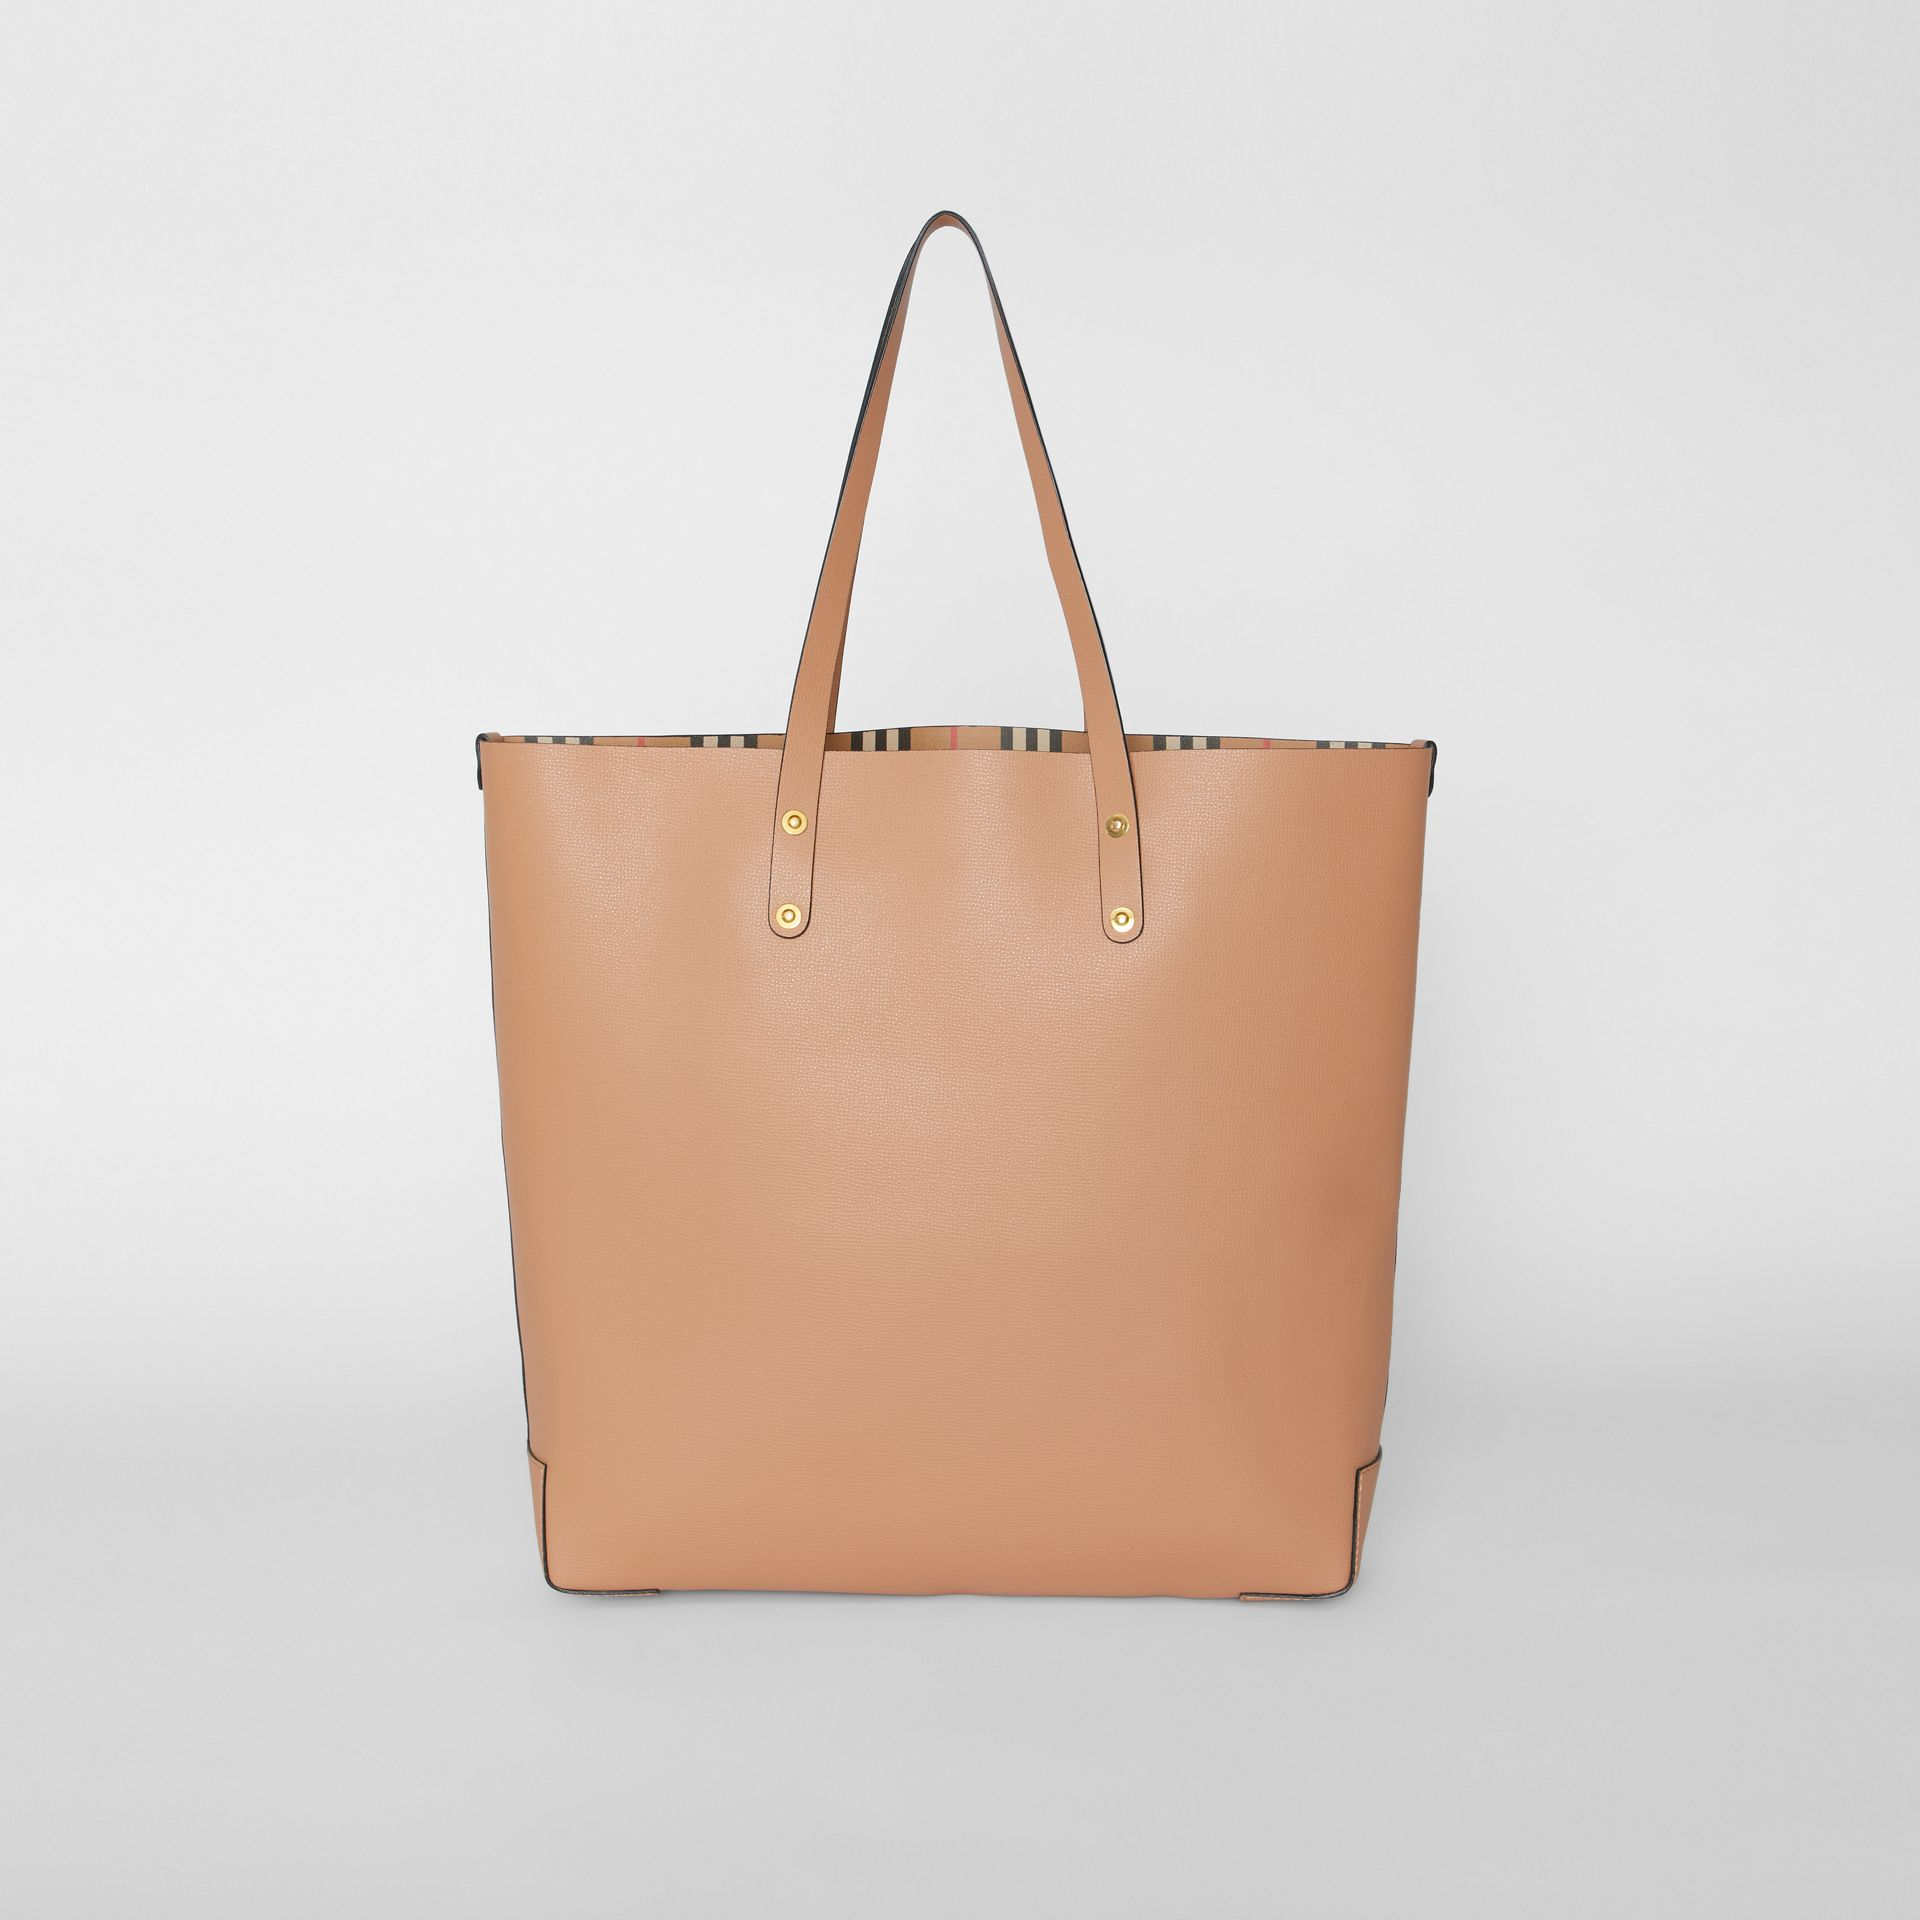 Embossed Crest Leather Tote in Light Camel - Women | Burberry United Kingdom - gallery image 5